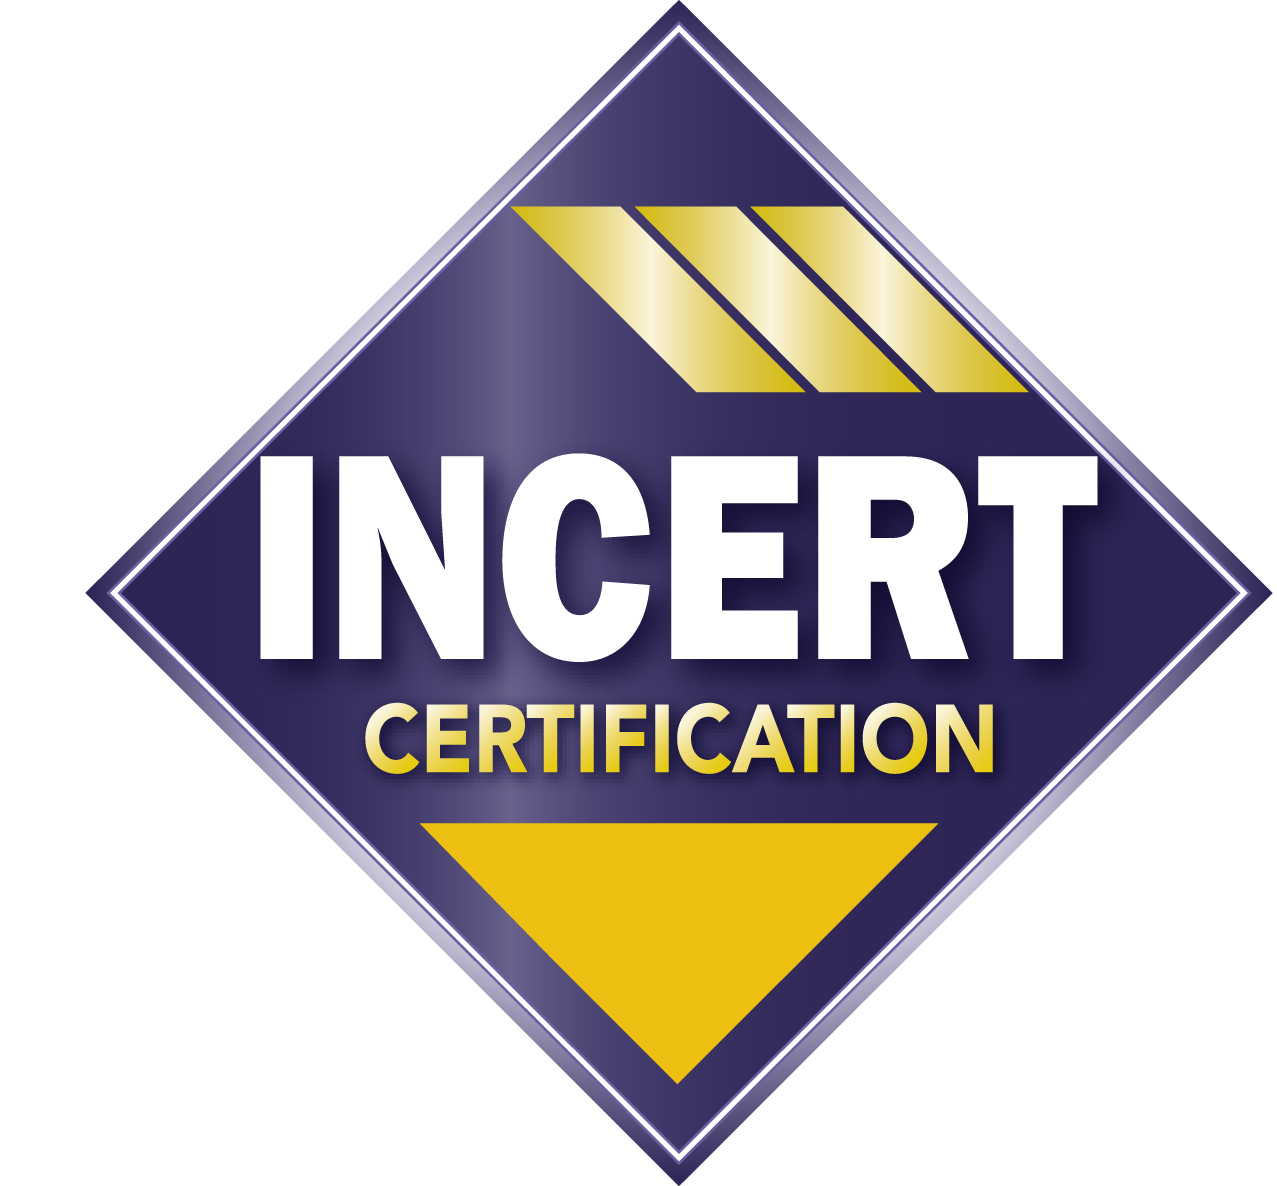 Le logo de certification INCERT